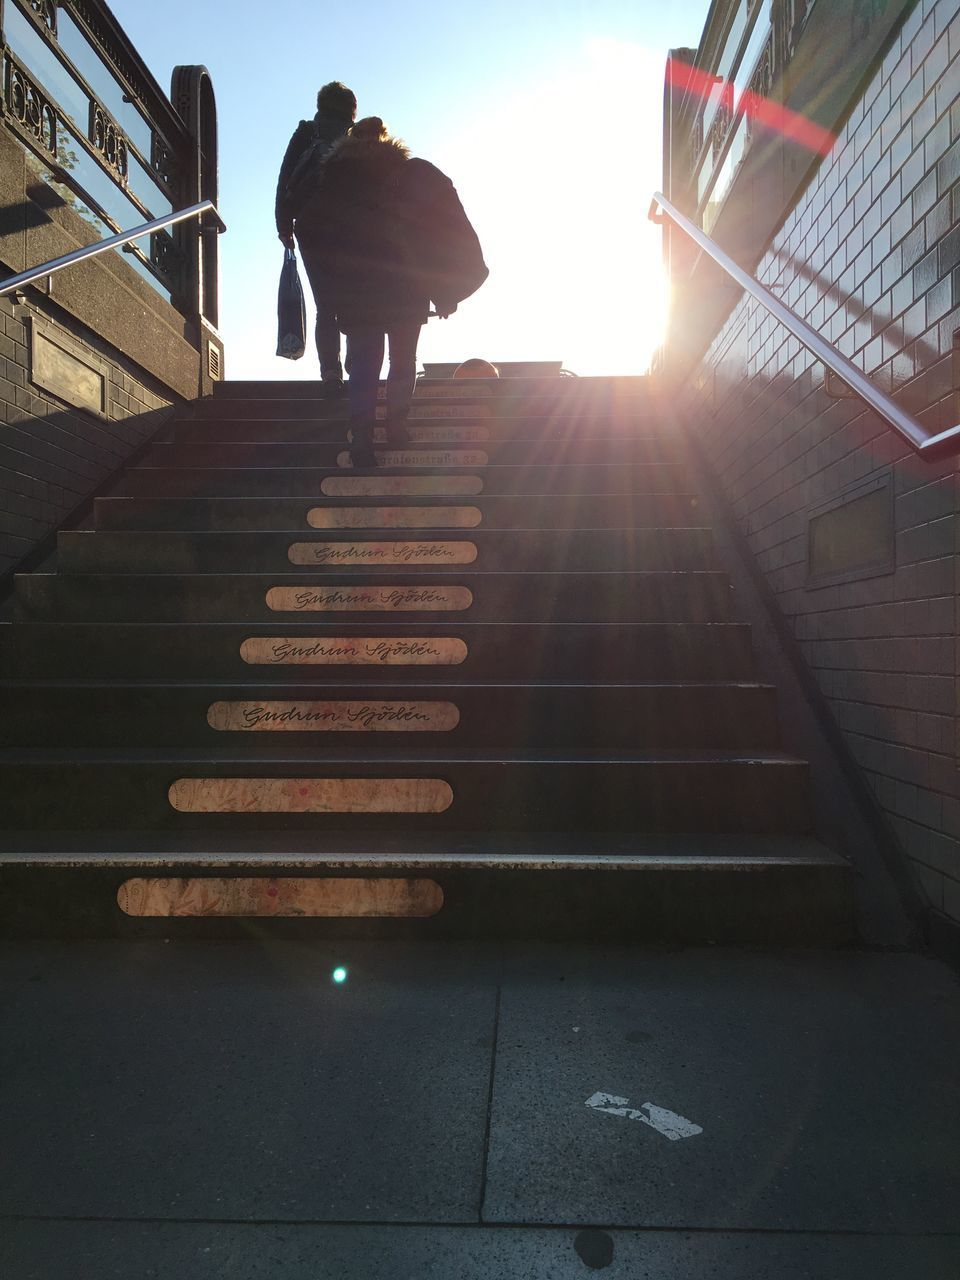 steps and staircases, steps, staircase, full length, real people, one person, rear view, railing, low angle view, sunlight, men, standing, walking, built structure, lifestyles, architecture, stairs, leisure activity, day, indoors, sky, one man only, adult, people